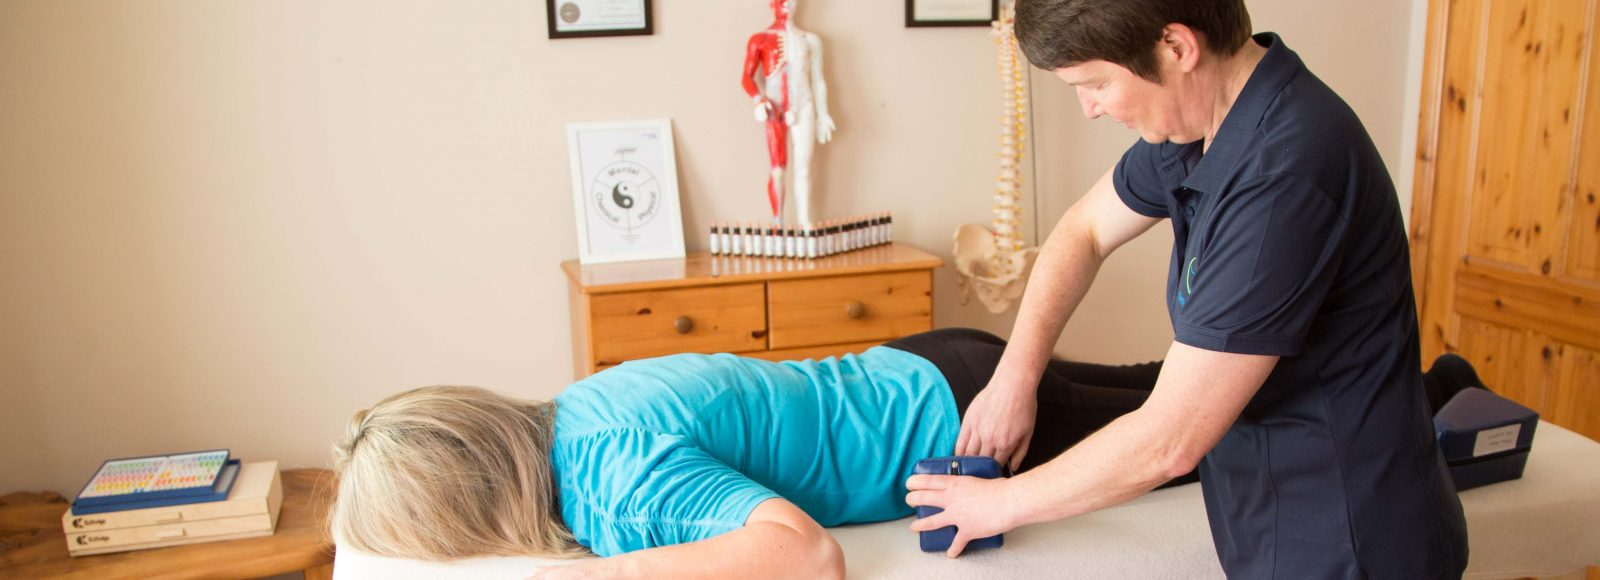 Sligo Kinesiology helping with lower back pain